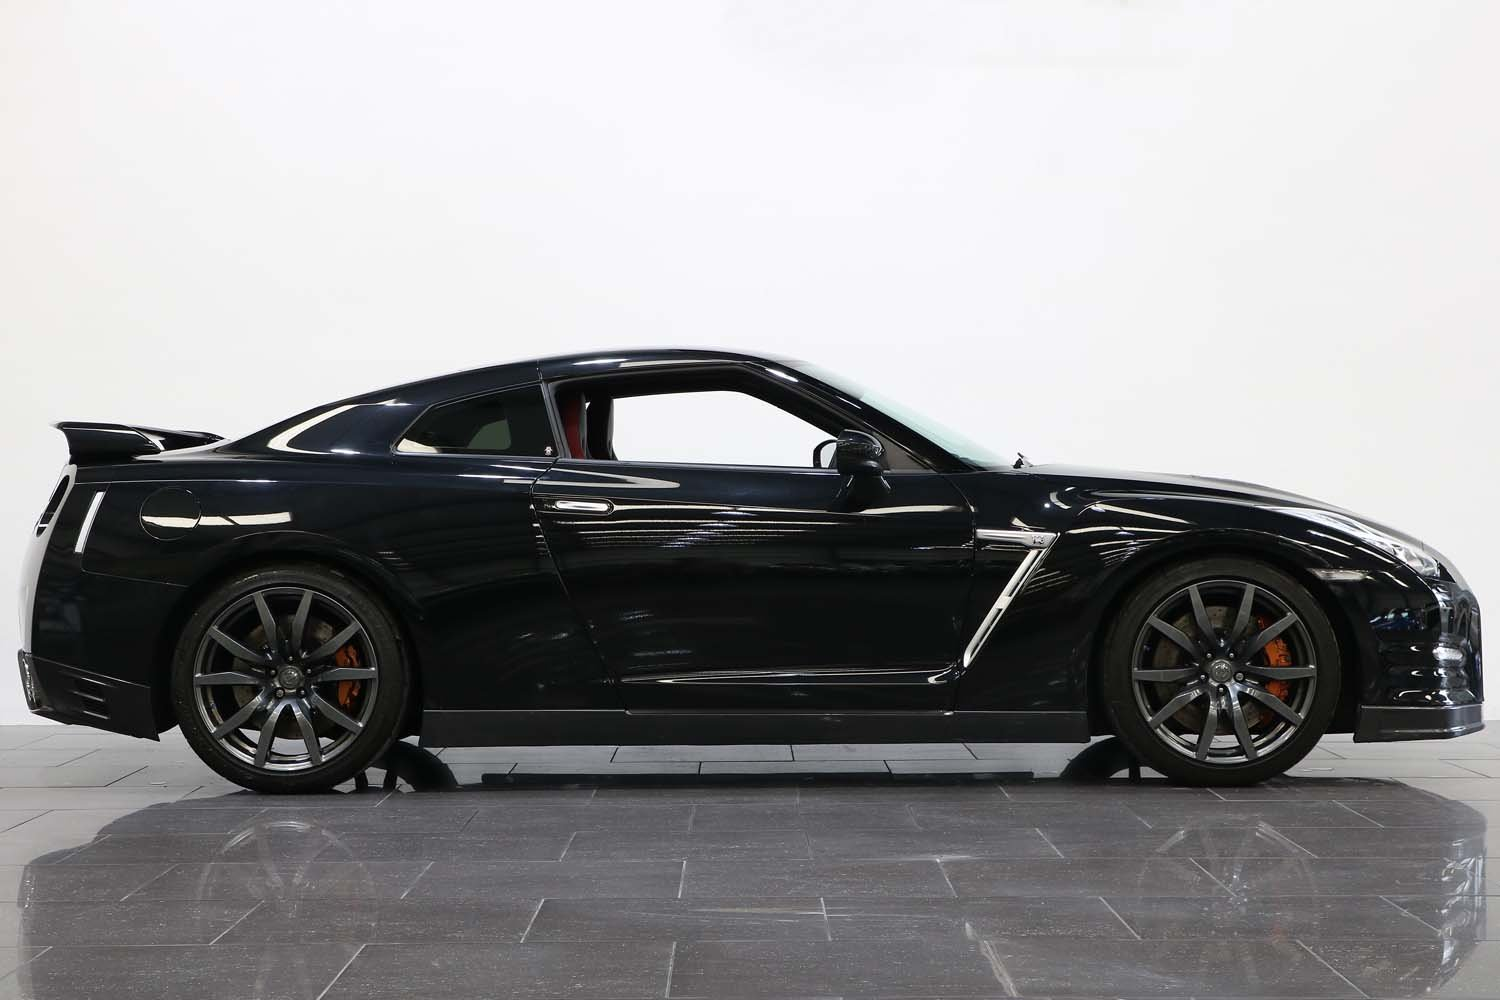 2016 16 NISSAN GT-R 3.8 PREMIUM AUTO  For Sale (picture 2 of 6)